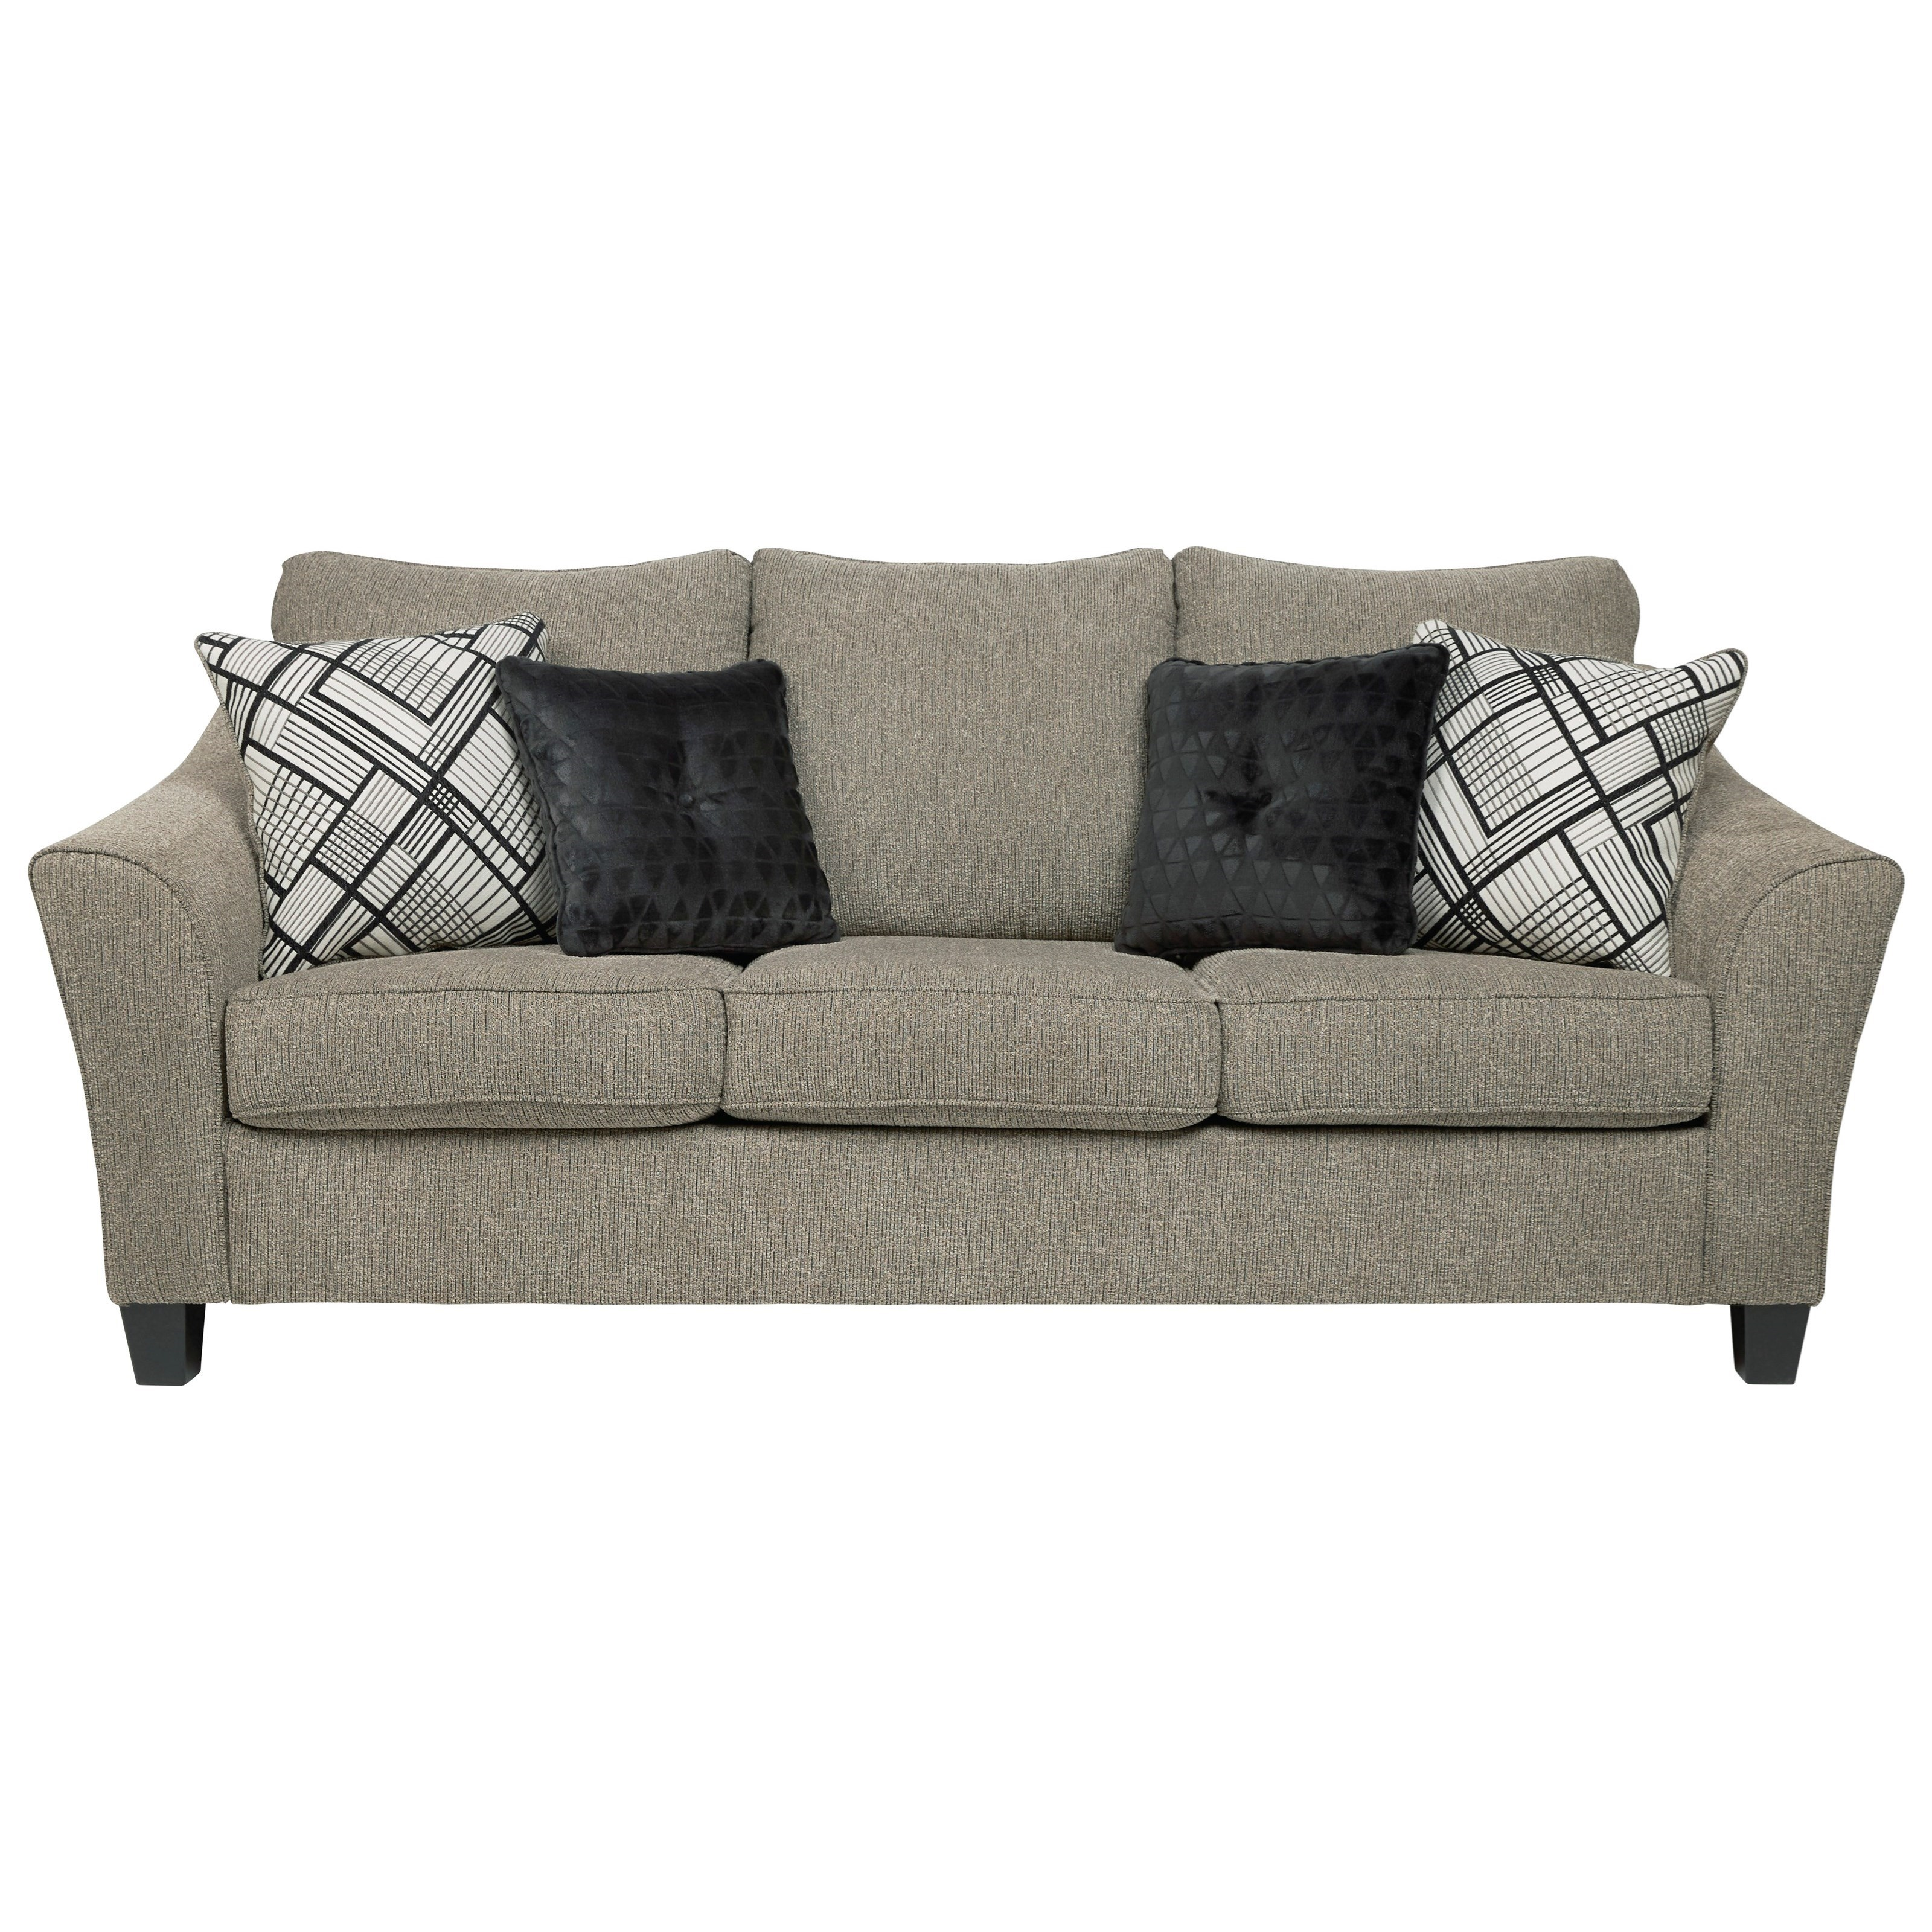 Barnesley Queen Sofa Sleeper by Benchcraft at Virginia Furniture Market